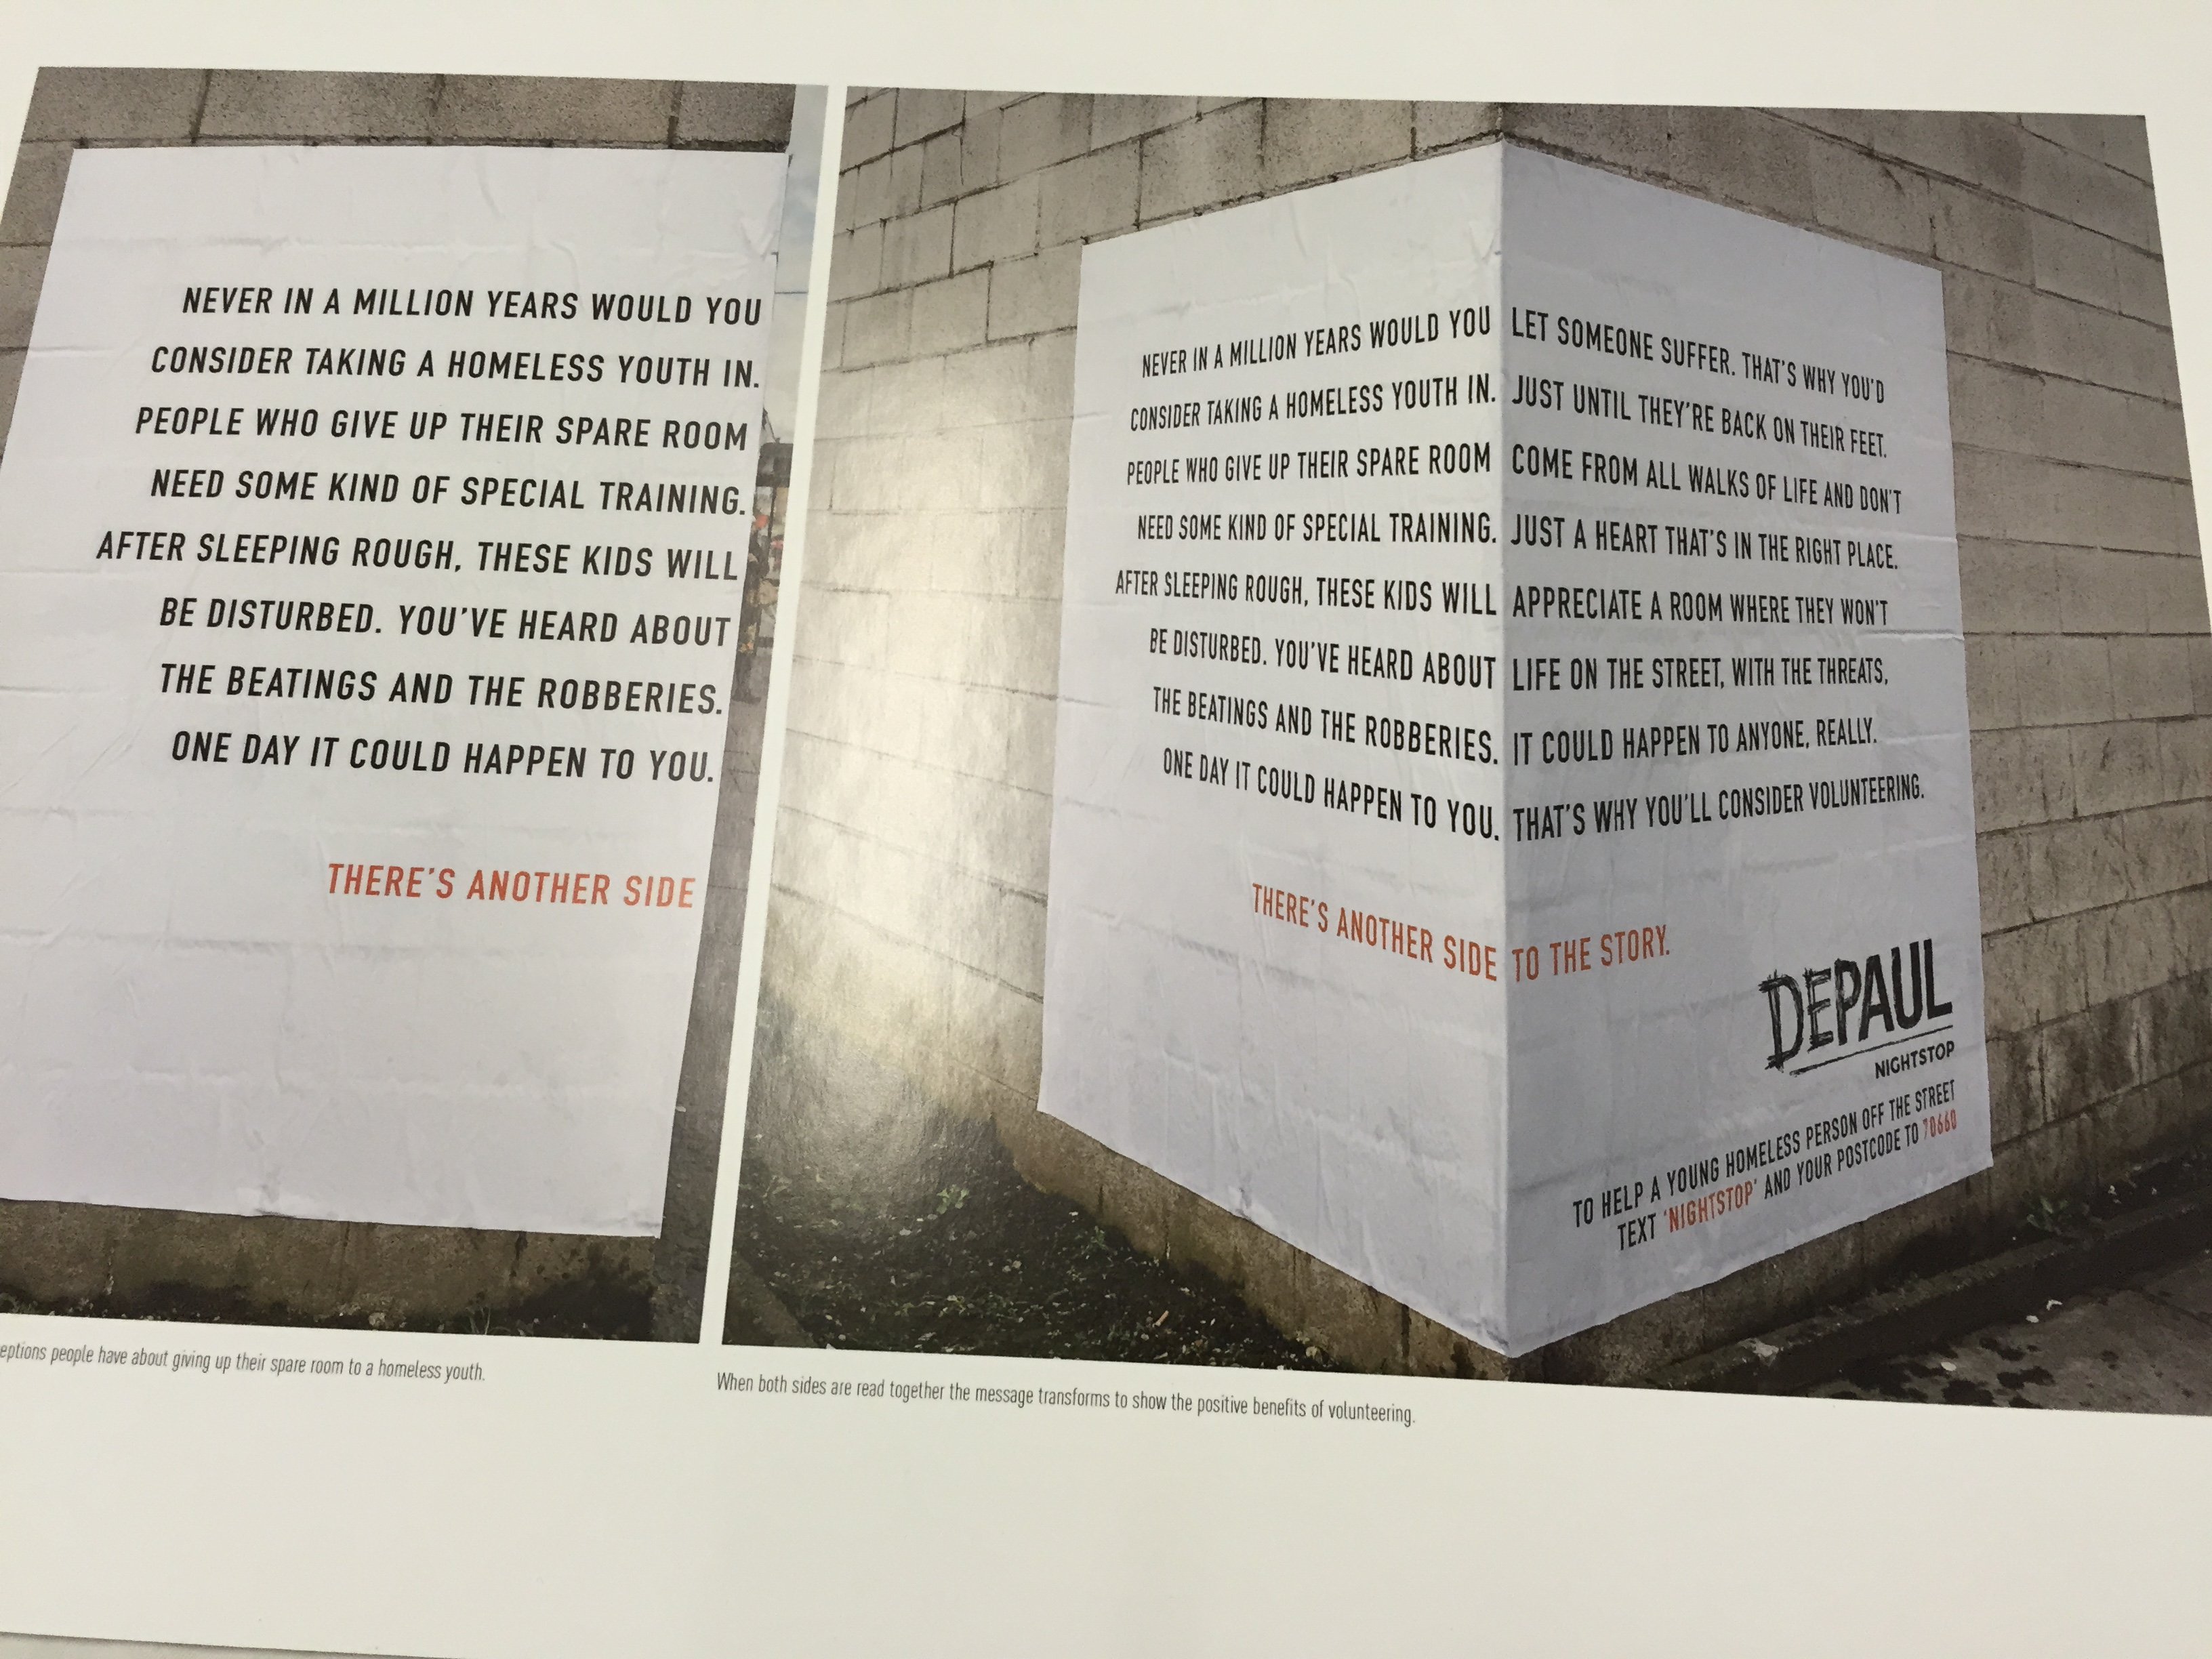 See two sides to homelessness with this poster for Depaul